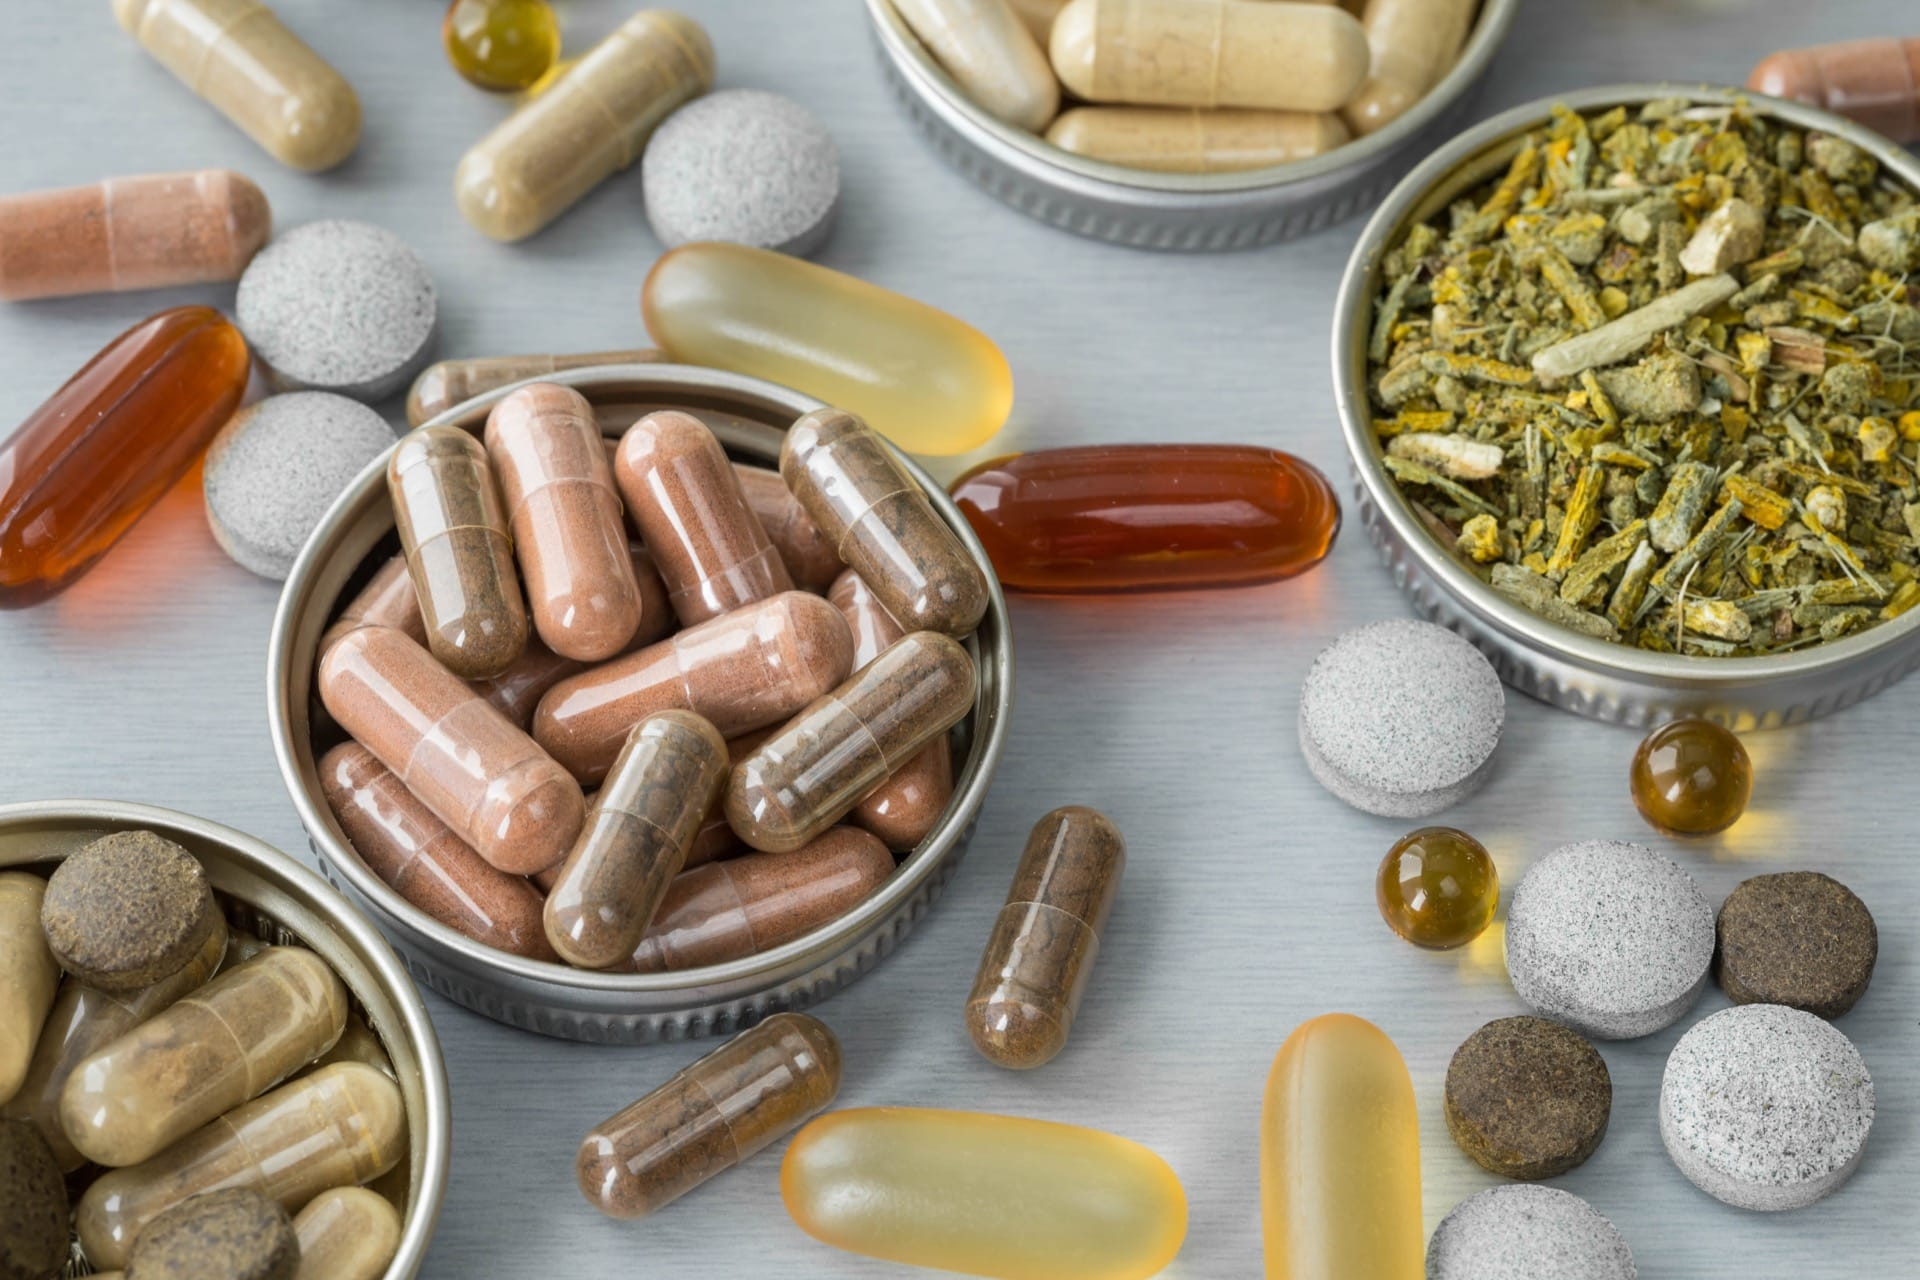 Mythbusting: Everyone needs to take a multivitamin